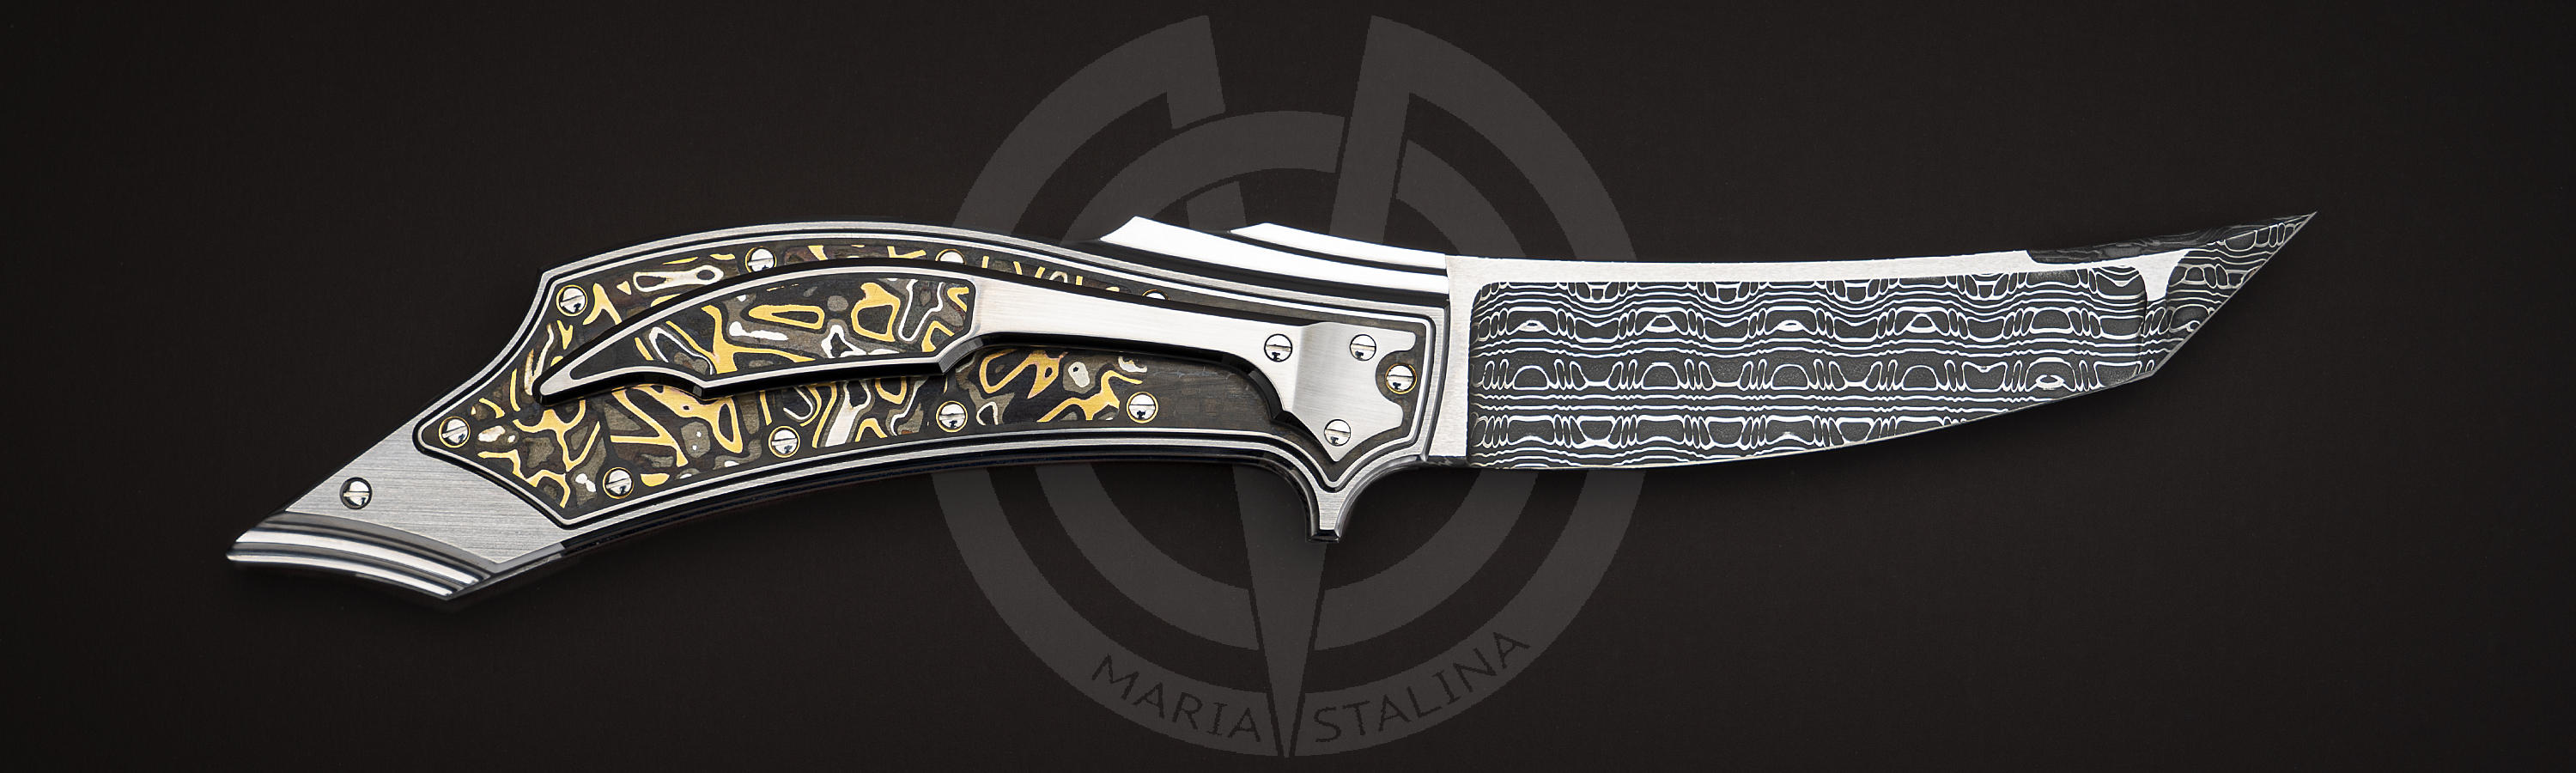 Damascus blade of White Fang